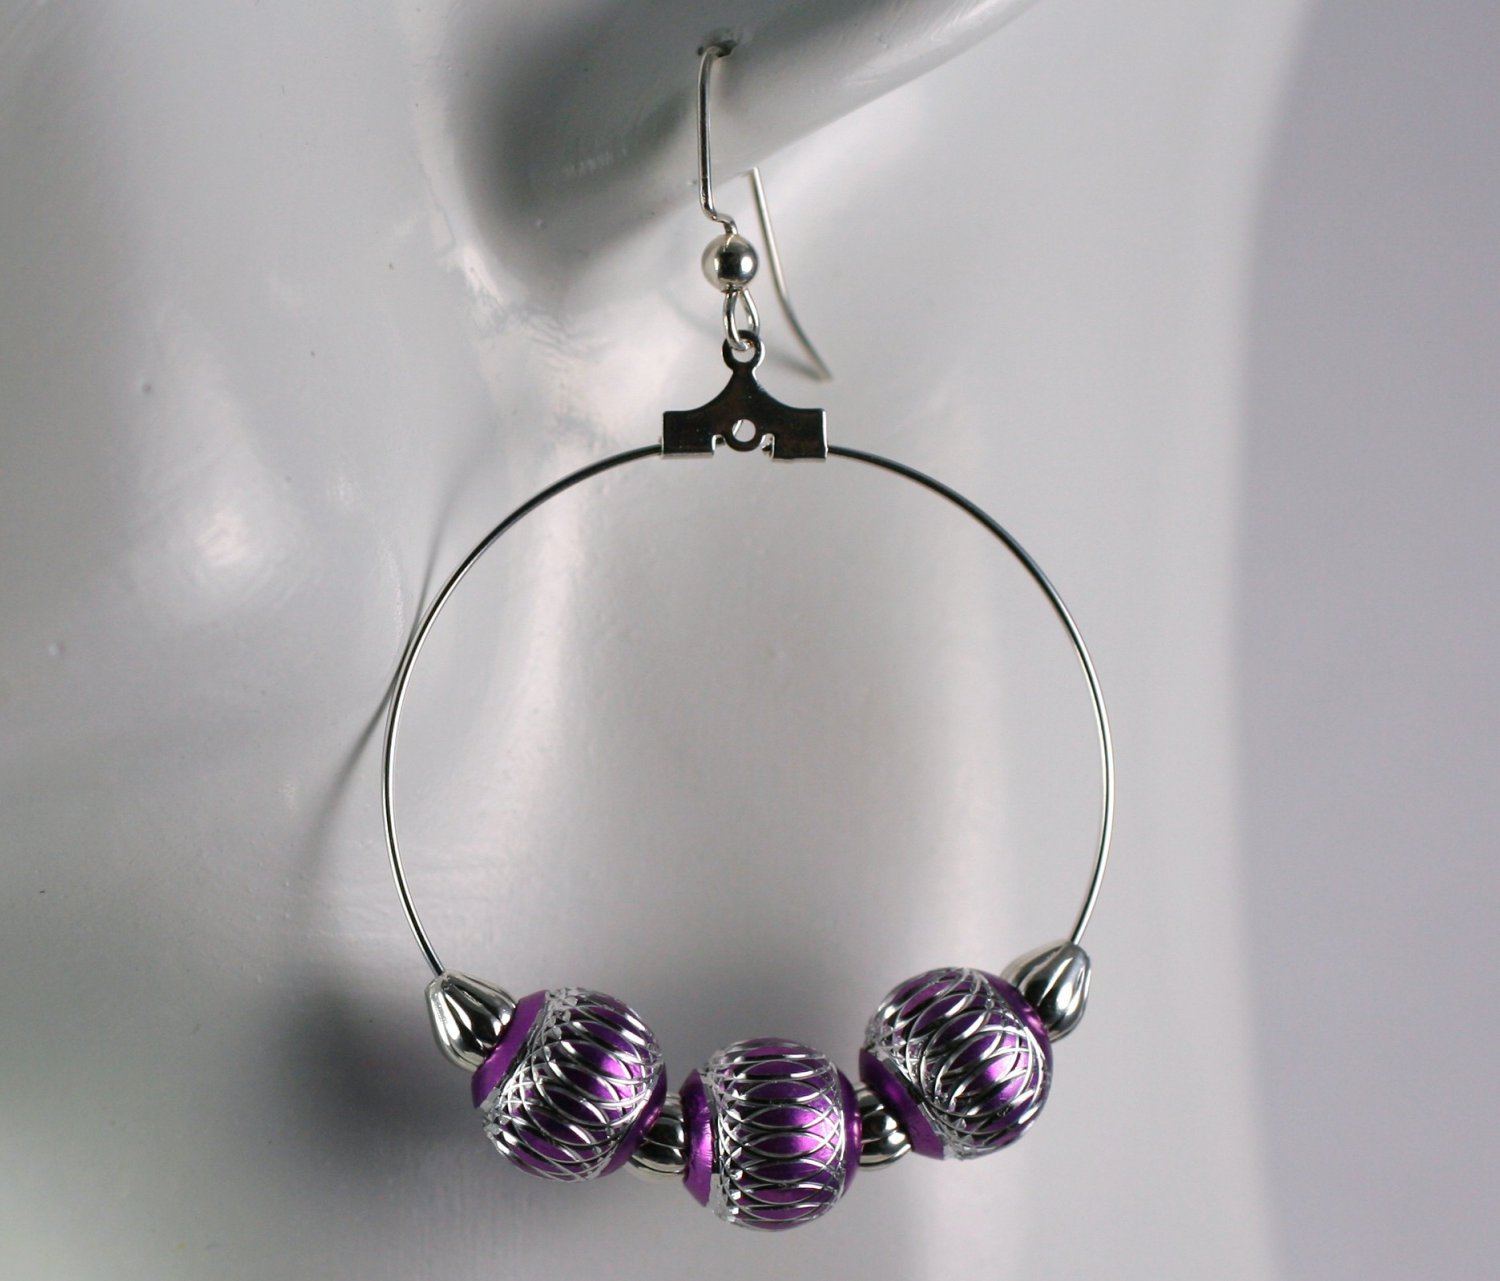 Silver Hoop Earrings with Silver and Pink Beads 1.5 in. Diameter  Handcrafted Jewelry